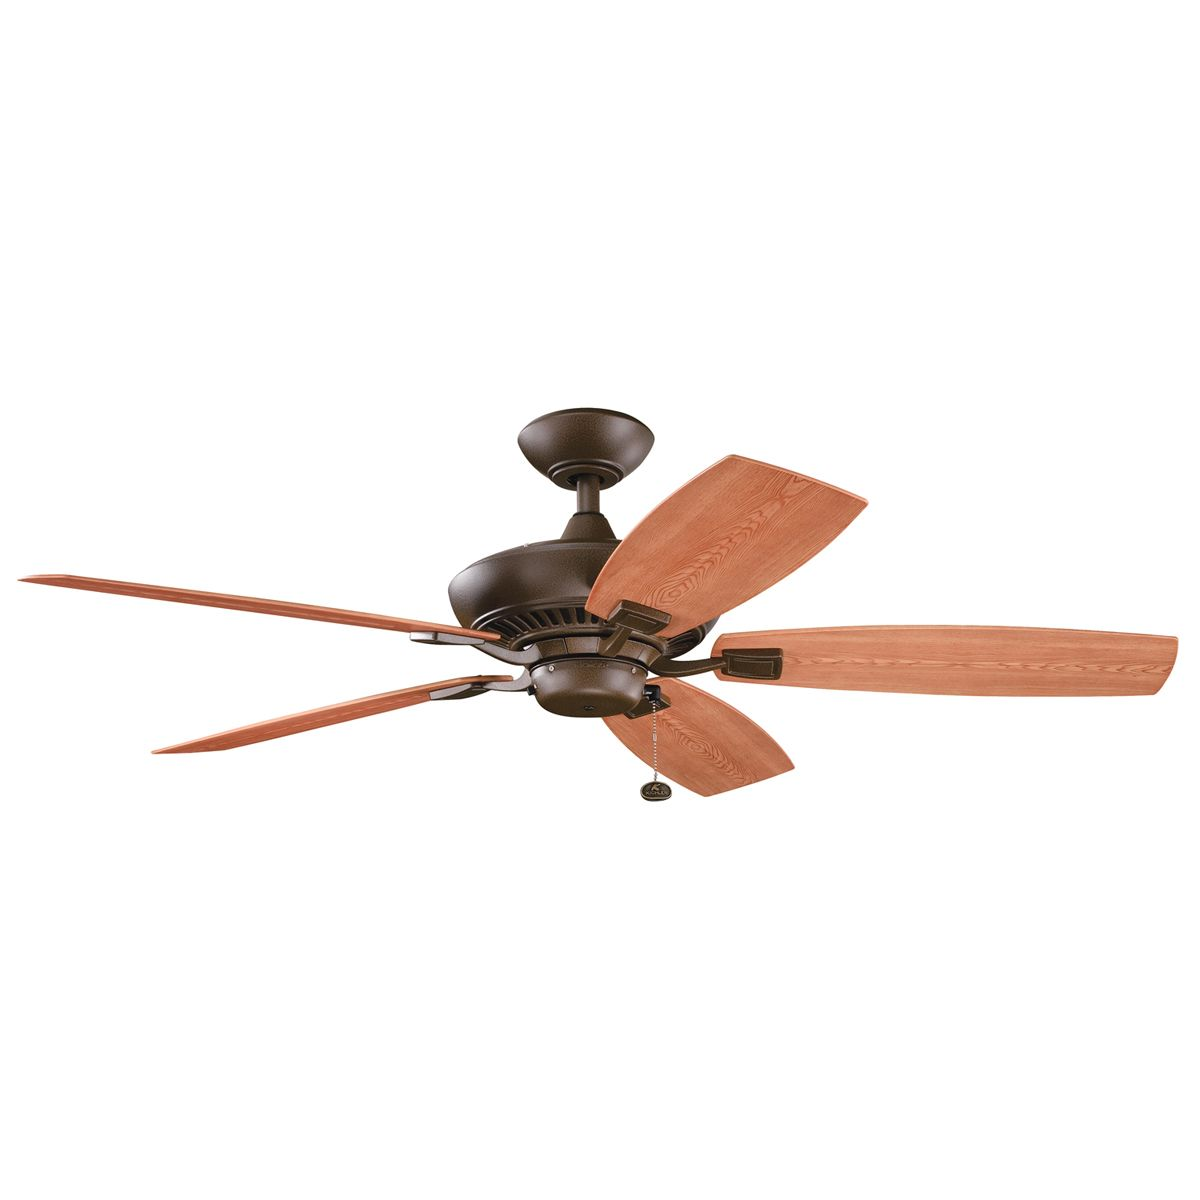 Kichler Canfield Patio 52 Ceiling Fan In Tannery Bronze Pwdr Ct